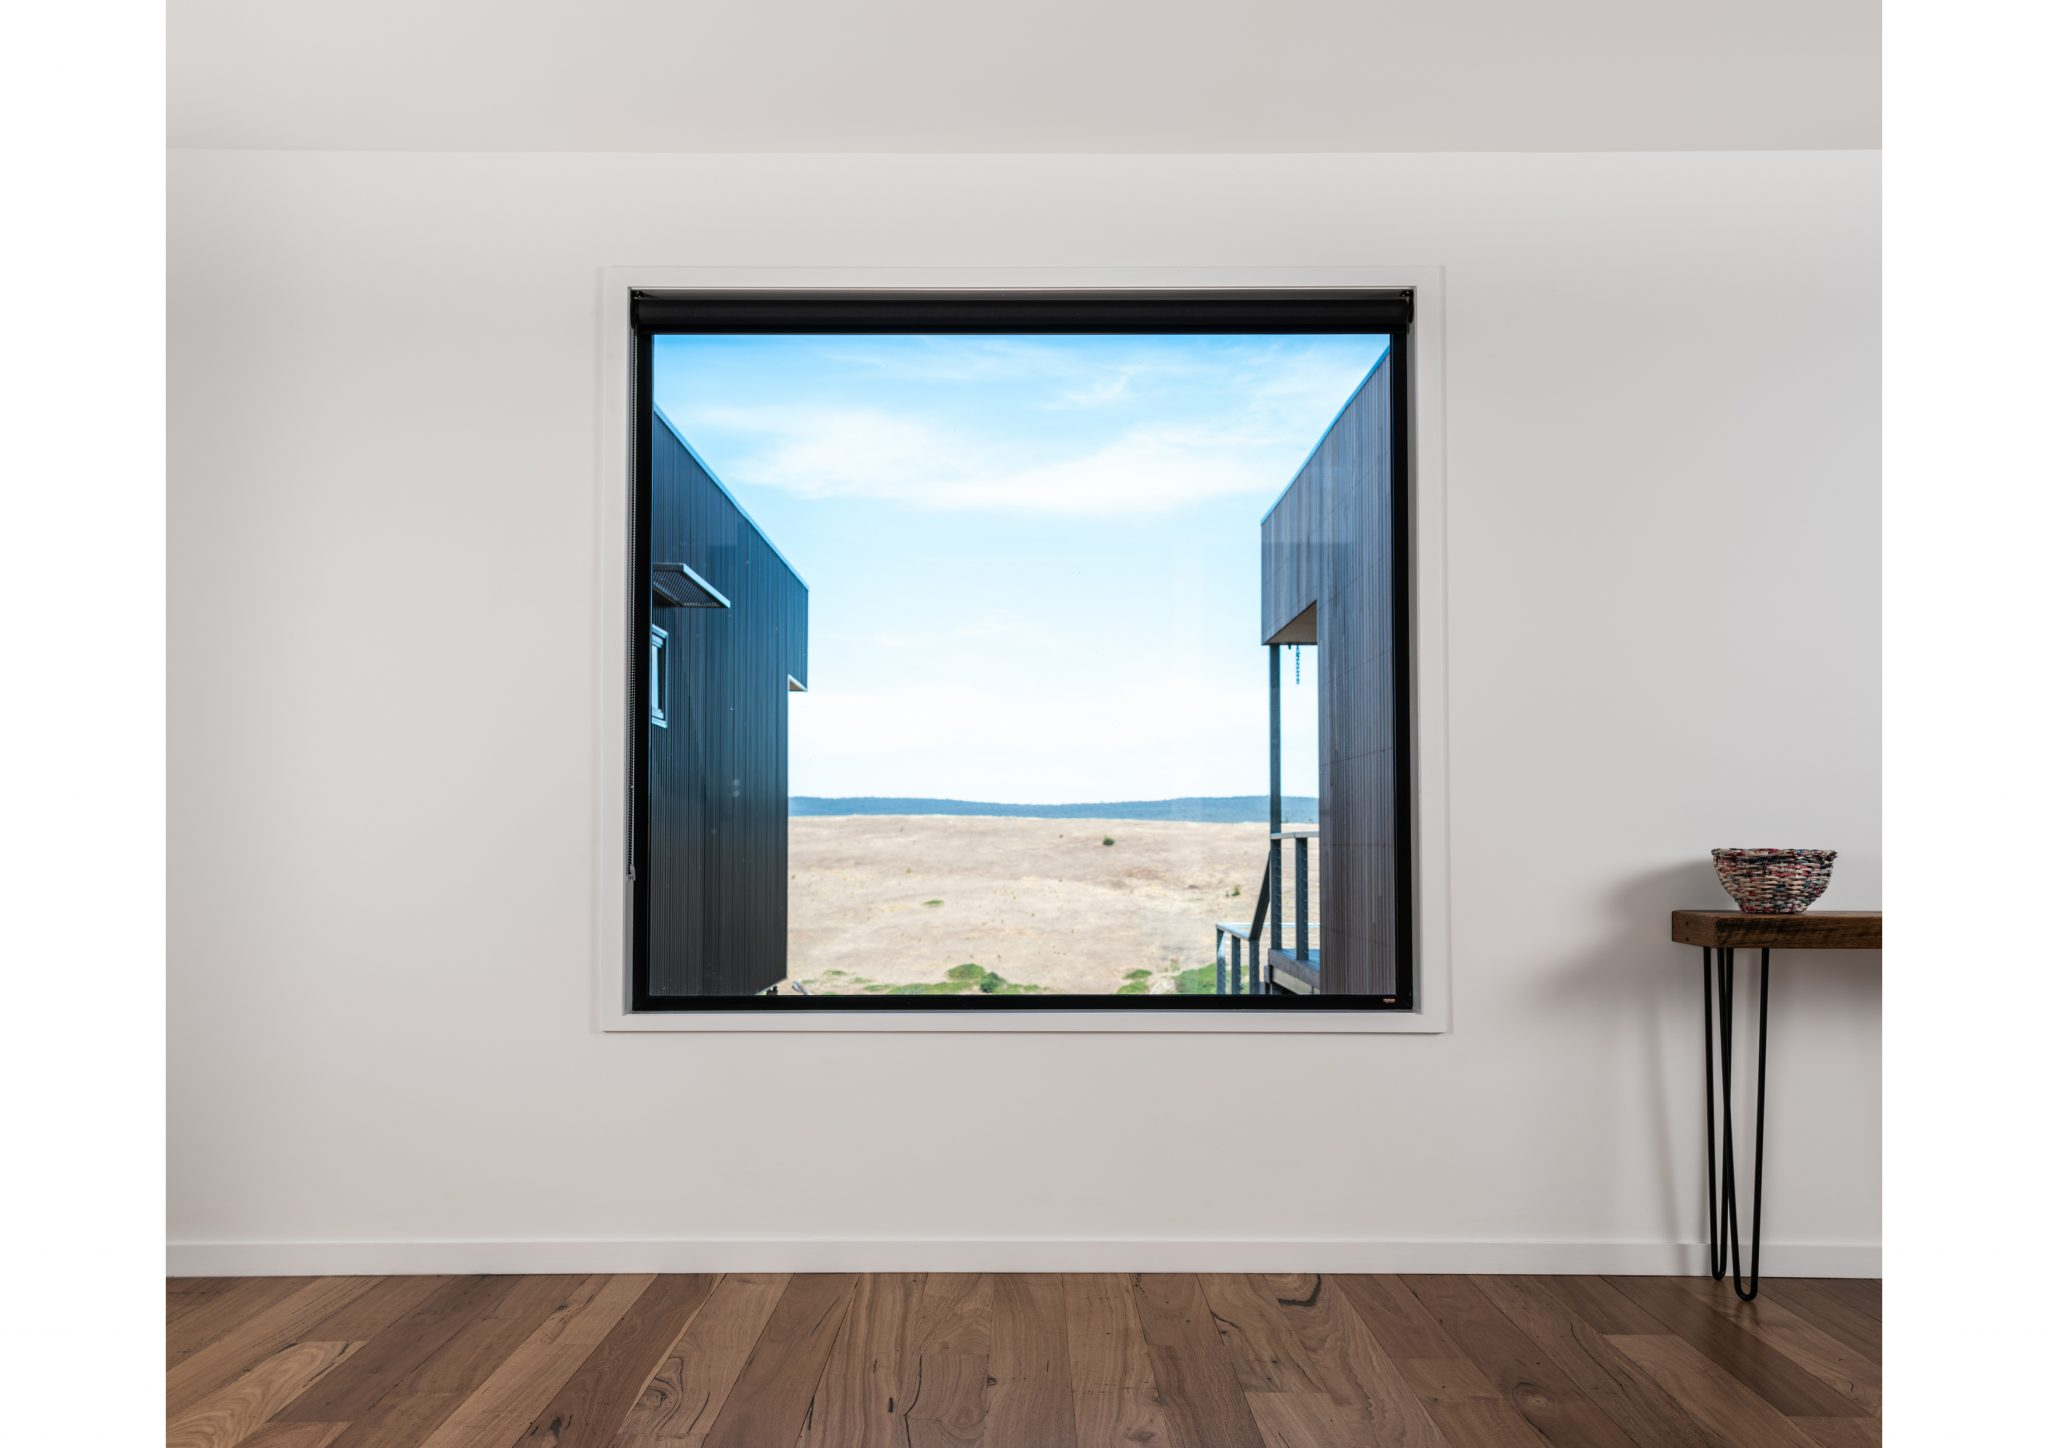 Taradale new home large black framed window view